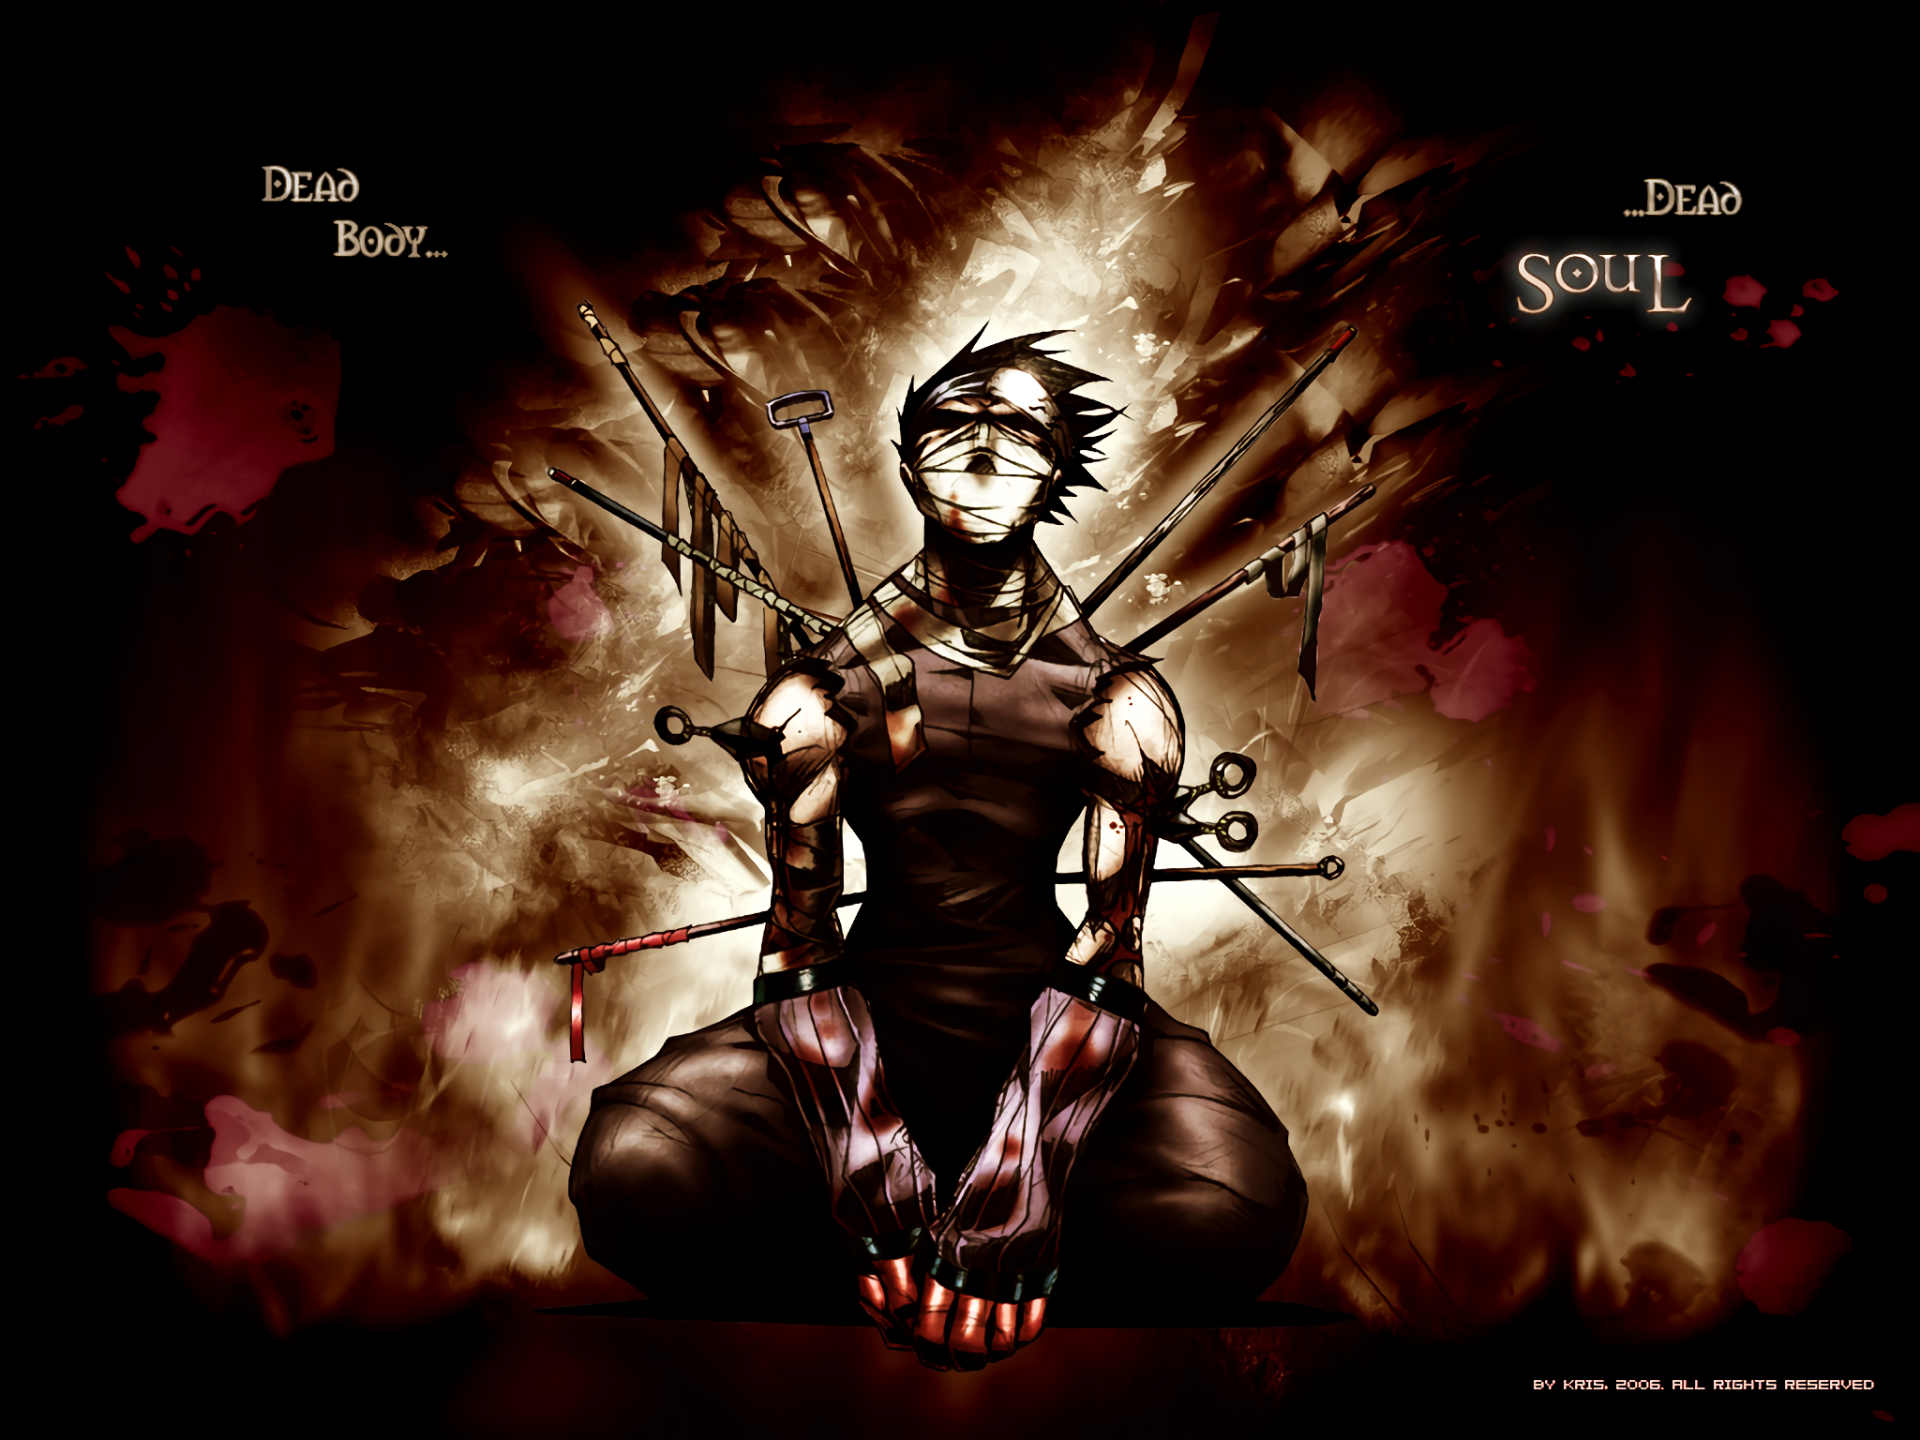 Anime - Naruto  Zabuza Momochi Anime Wallpaper